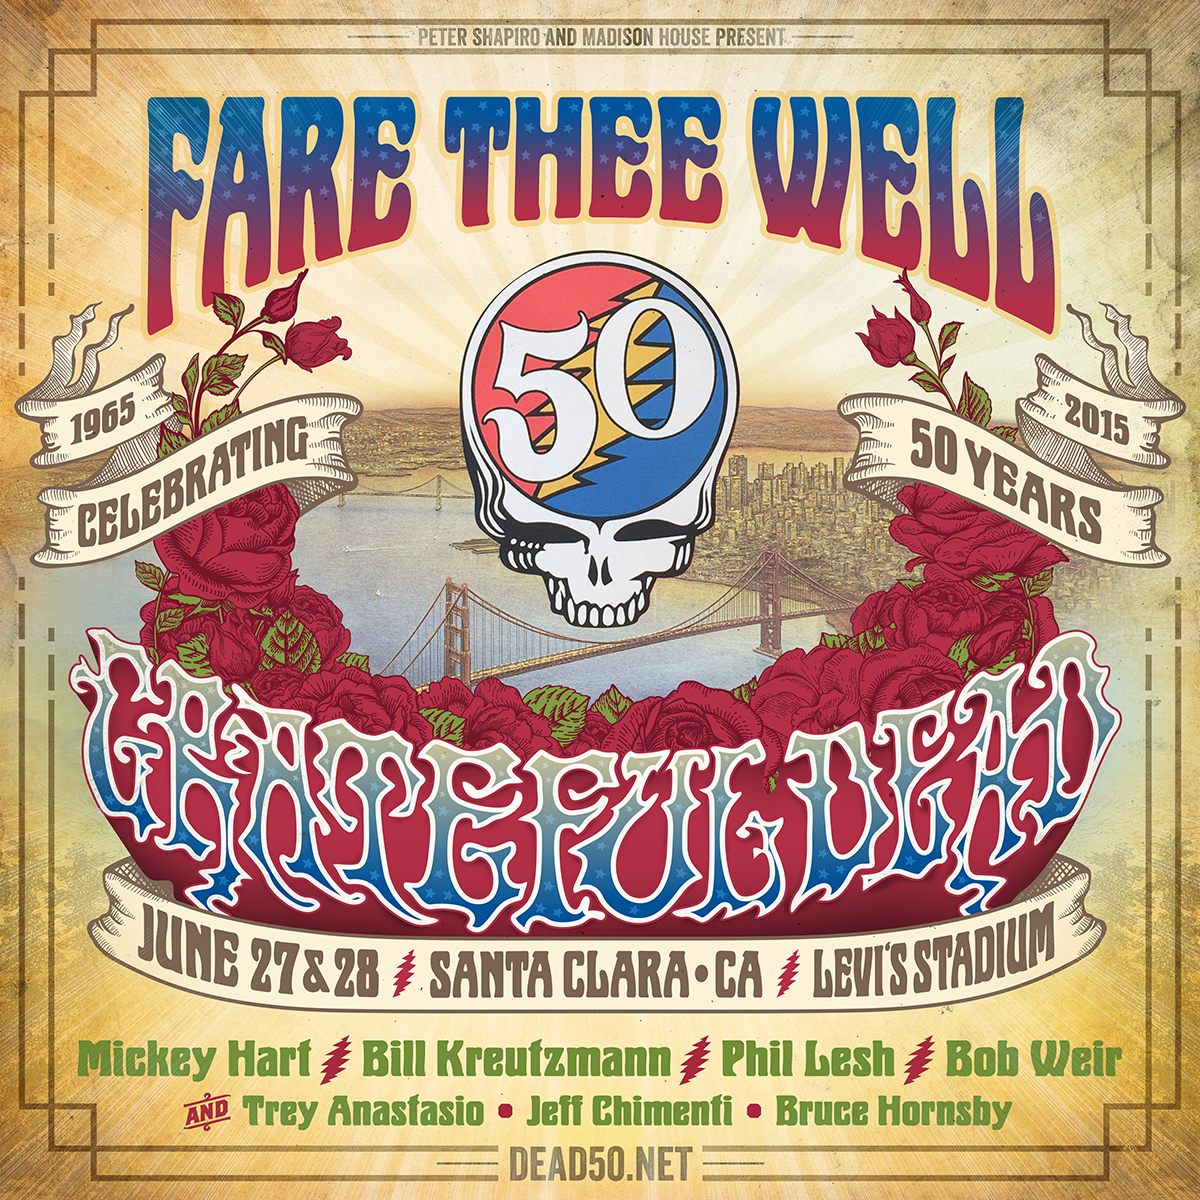 Fare Thee Well – Santa Clara: Celebrating 50 Years of The Grateful Dead